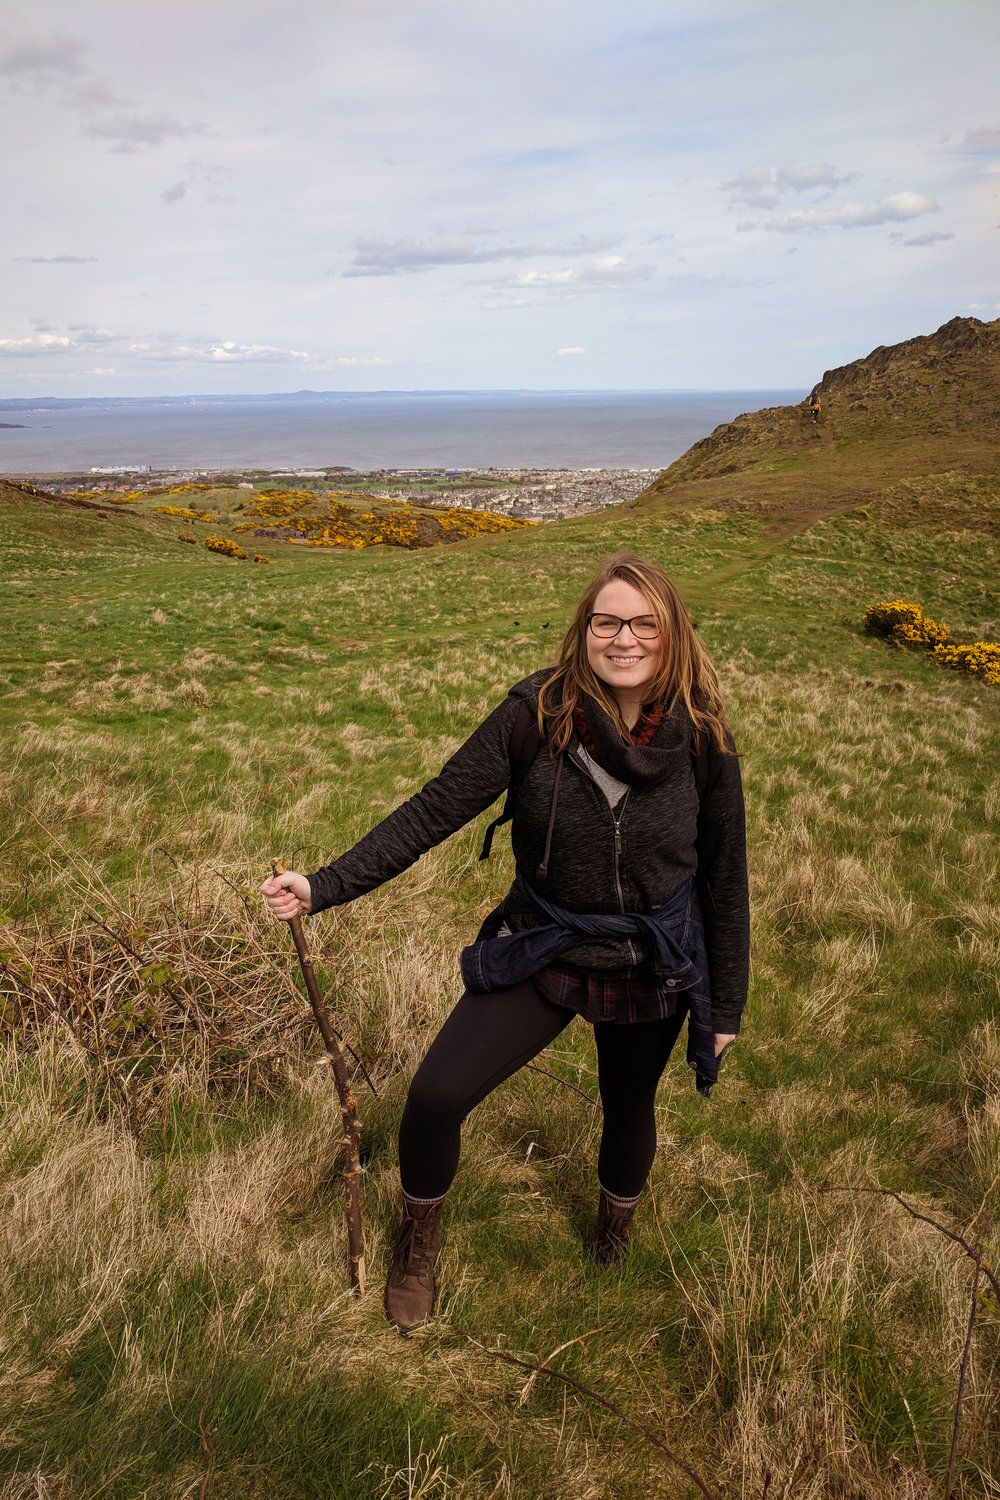 Hiking to Arthur's Seat in Edinburgh, 2018